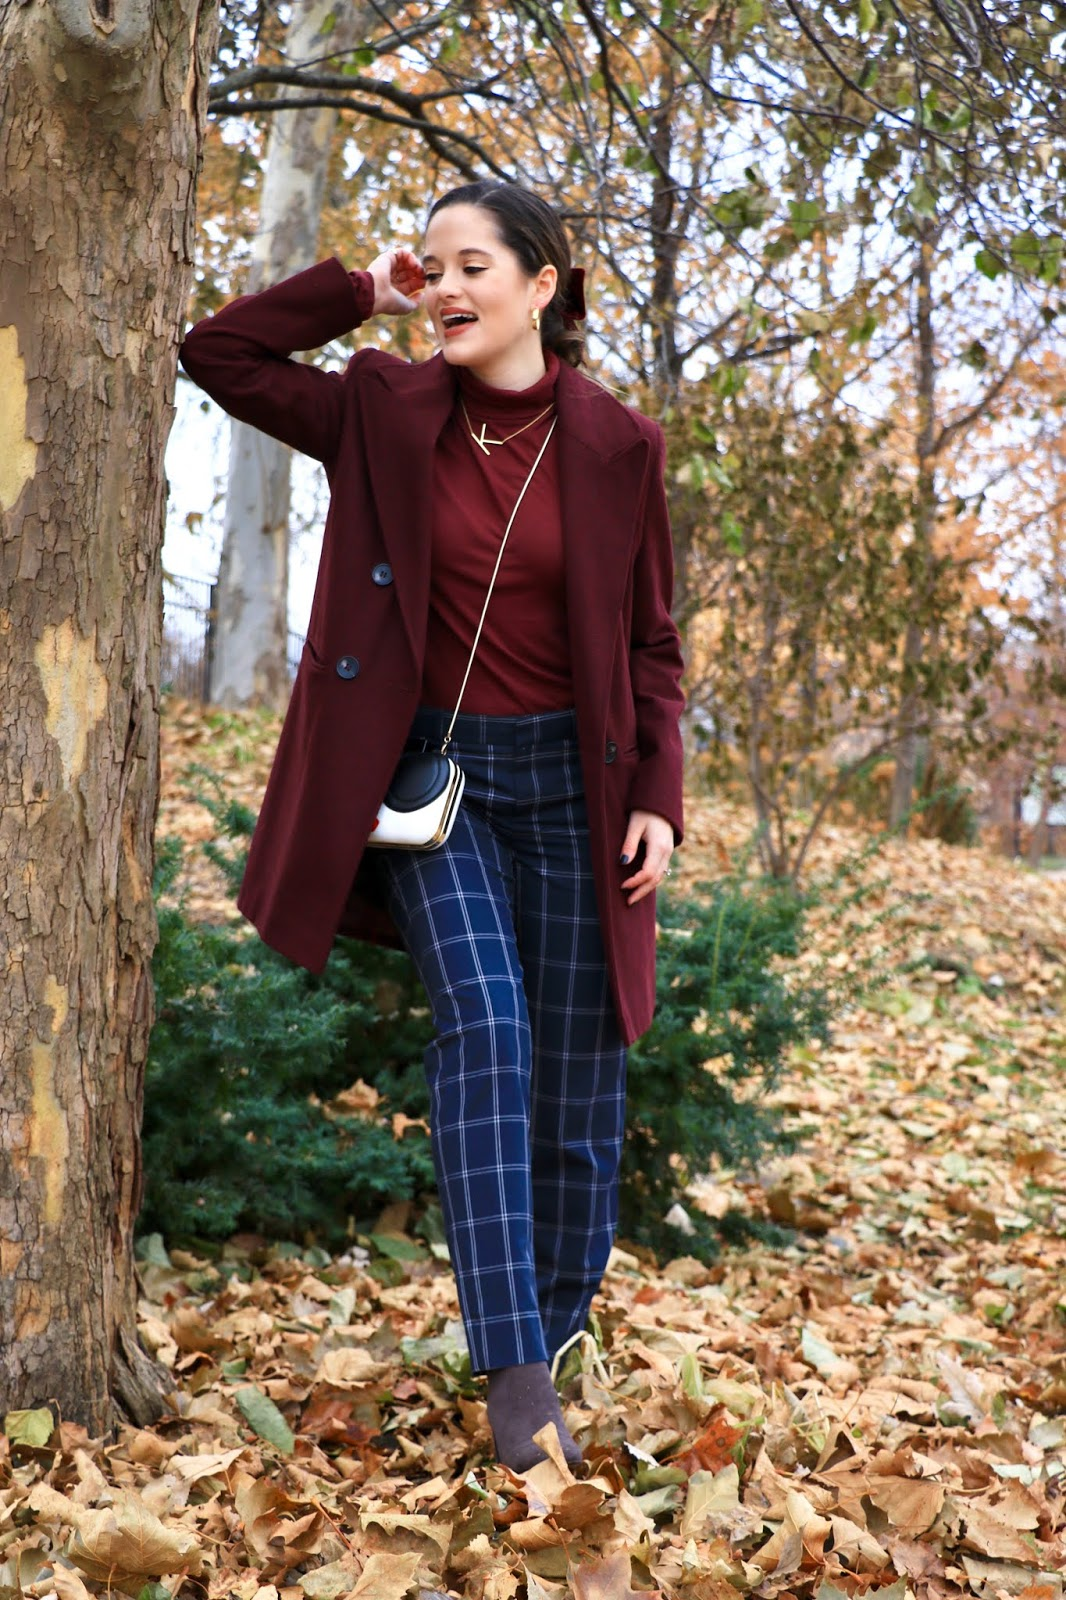 Nyc fashion blogger Kathleen Harper's fall outfit in Naperville, Illinois.